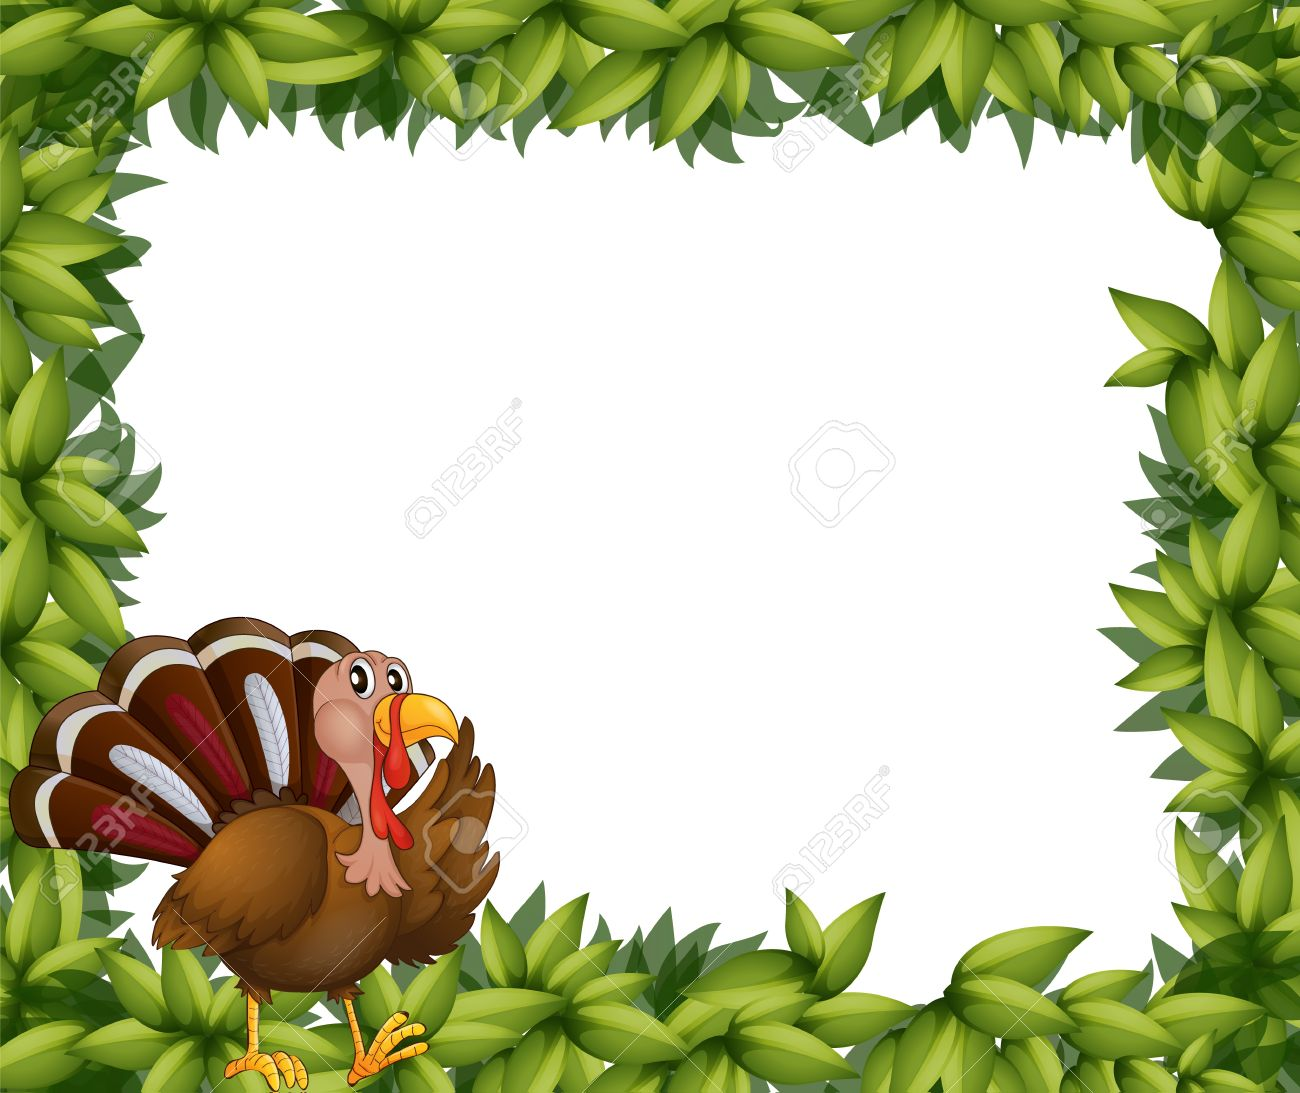 Images: Thanksgiving Frames And Borders